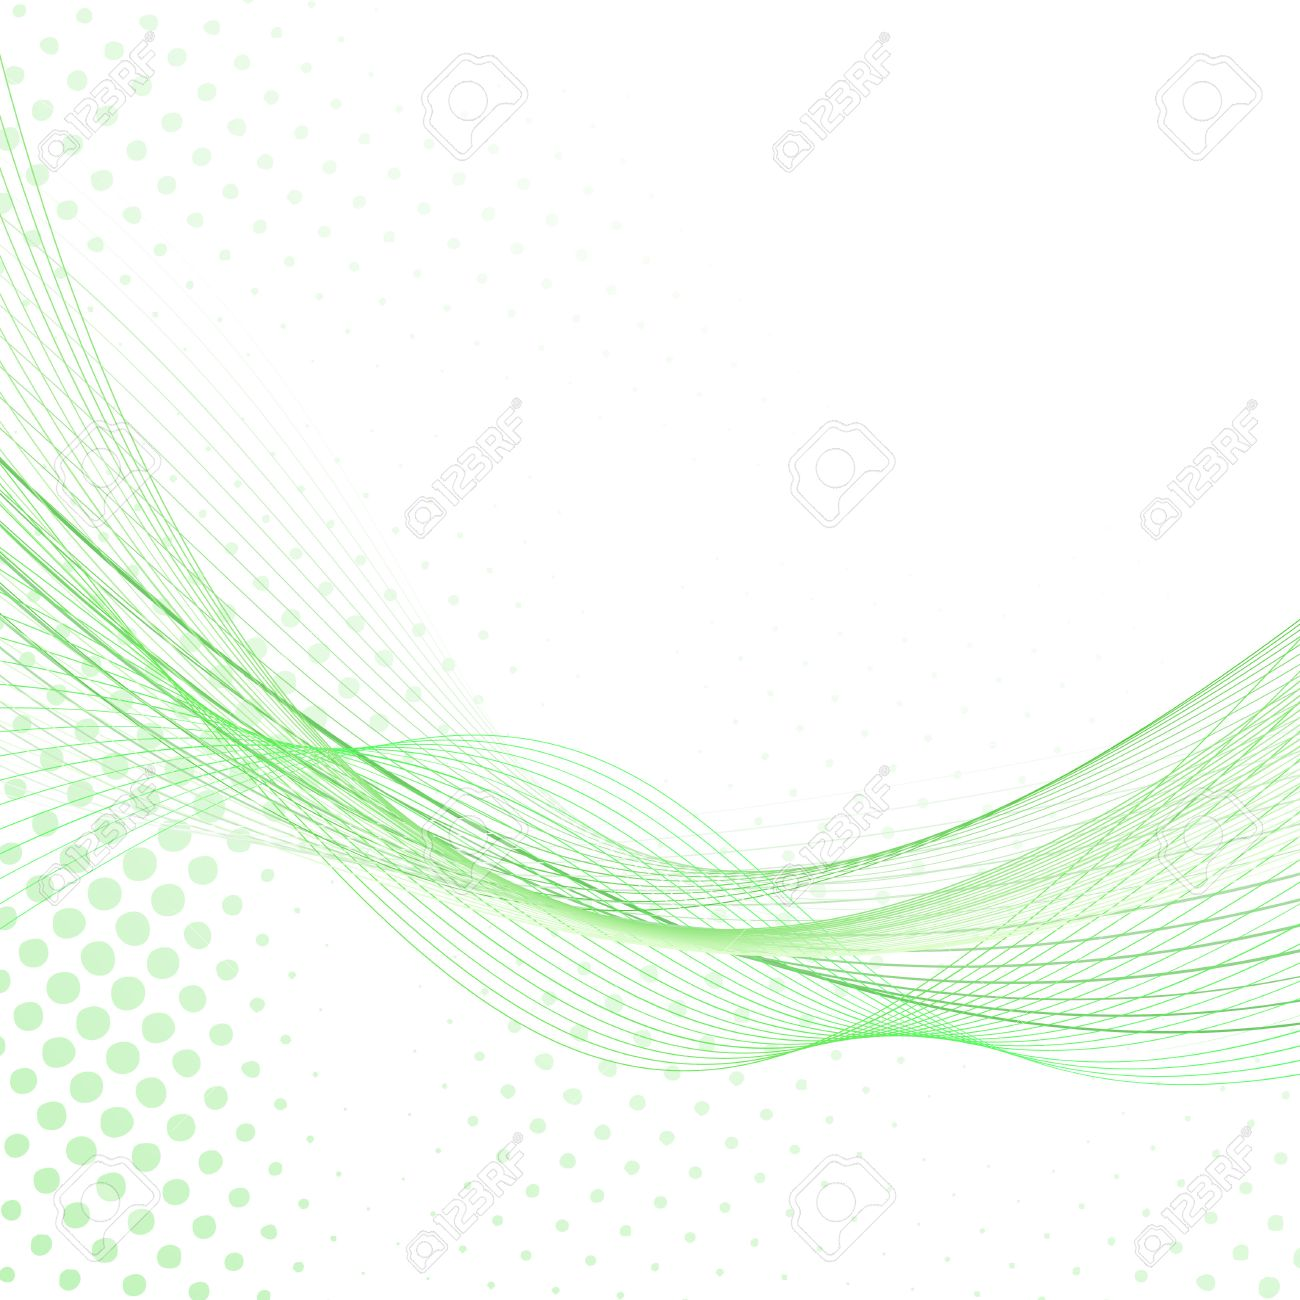 Abstract Fresh Green Lines Certificate Background